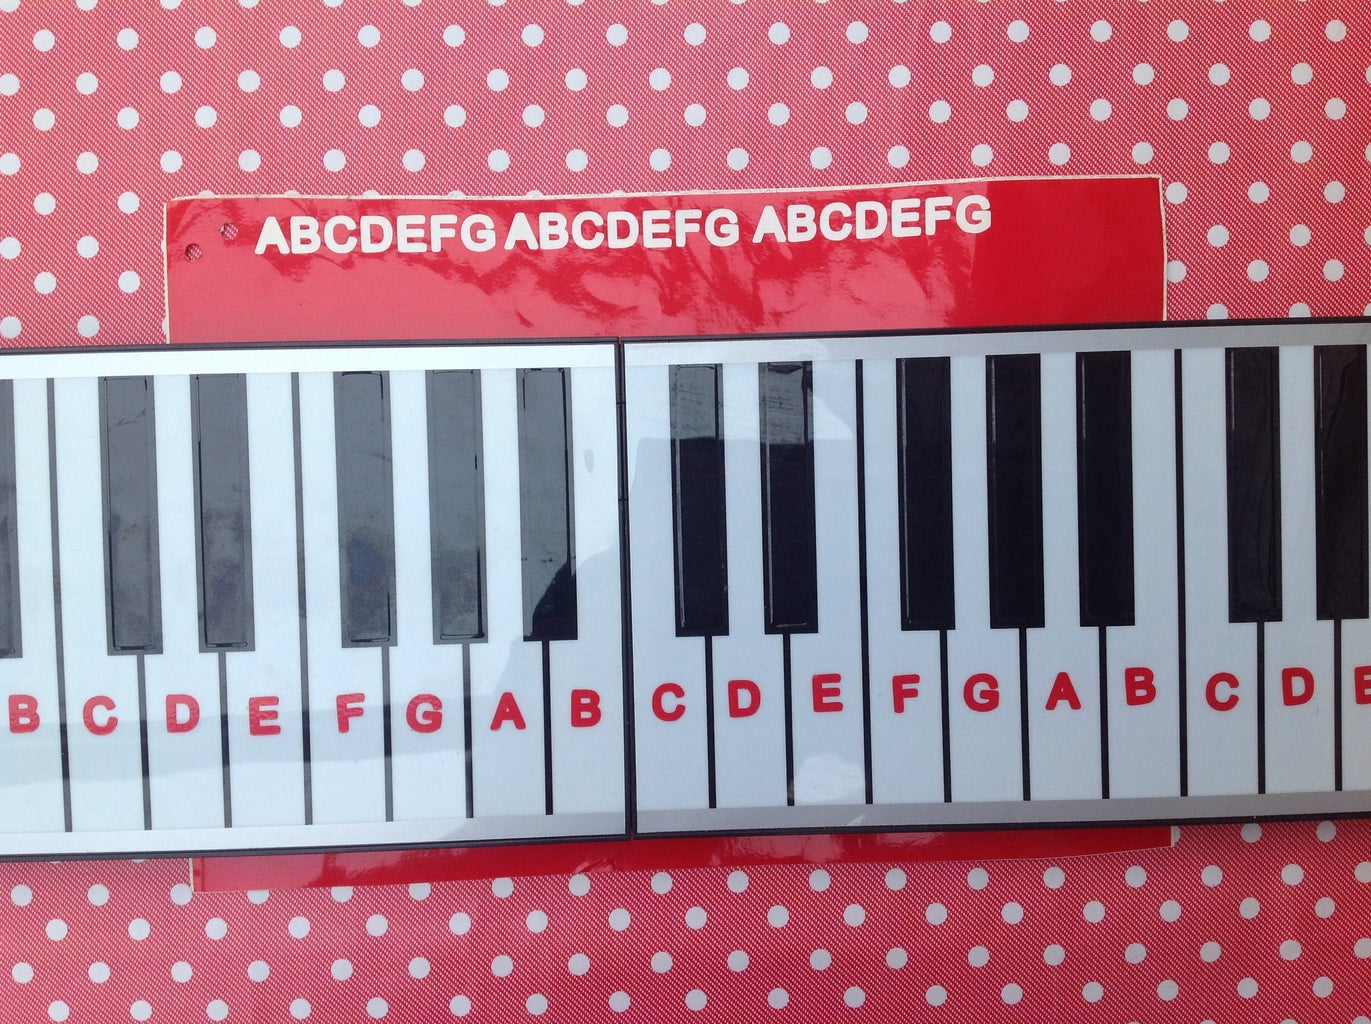 Stick the Letters Onto the Keys